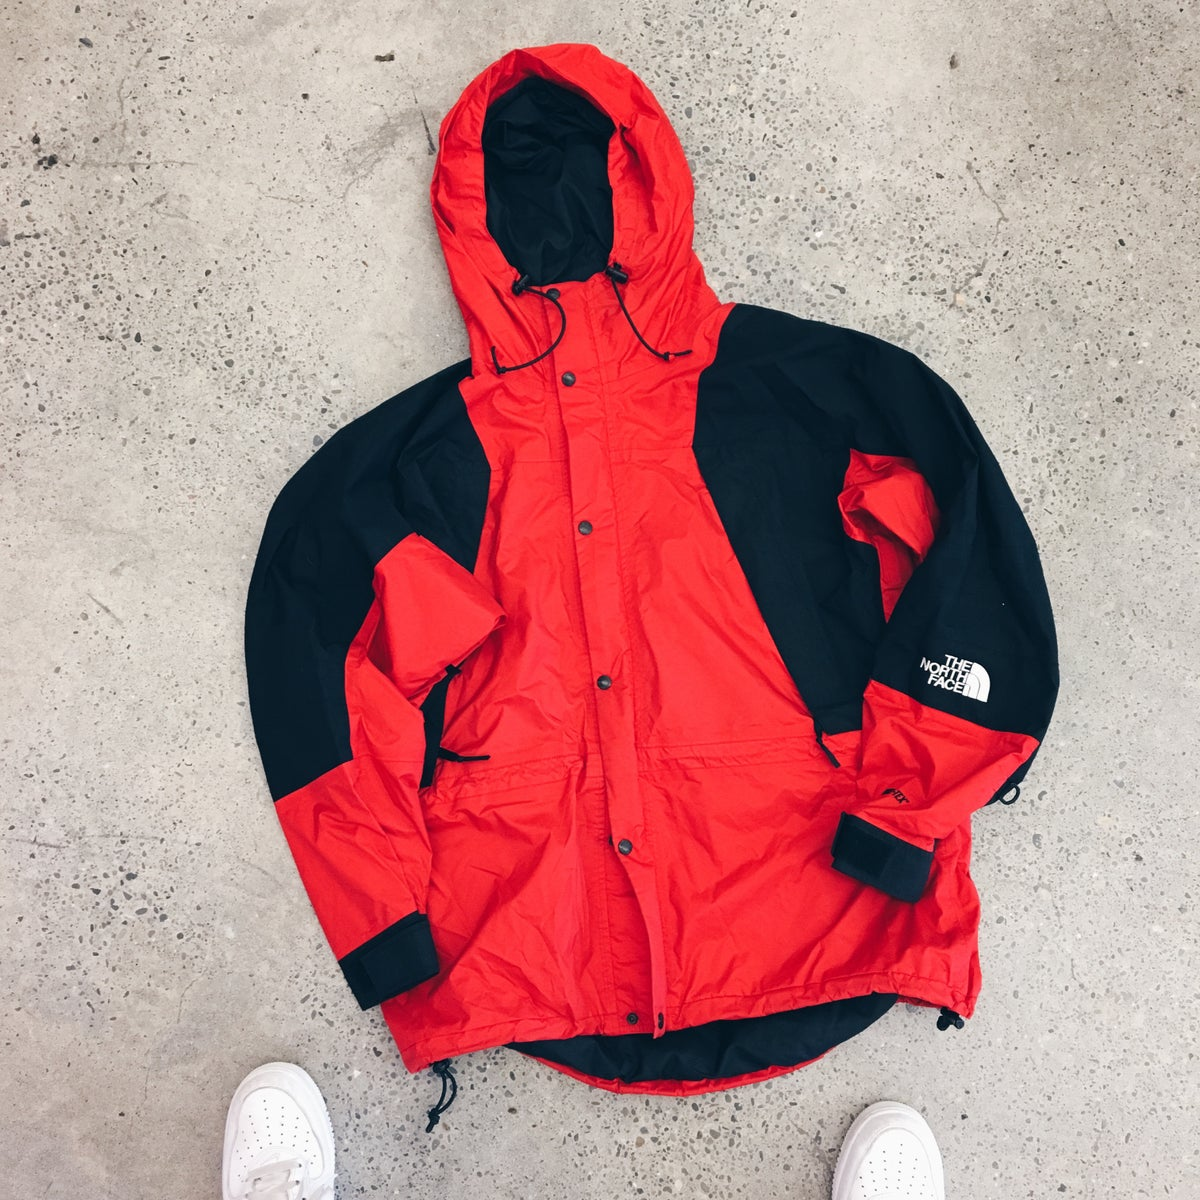 Image of Original 90's The North Face Mountain Light Jacket.